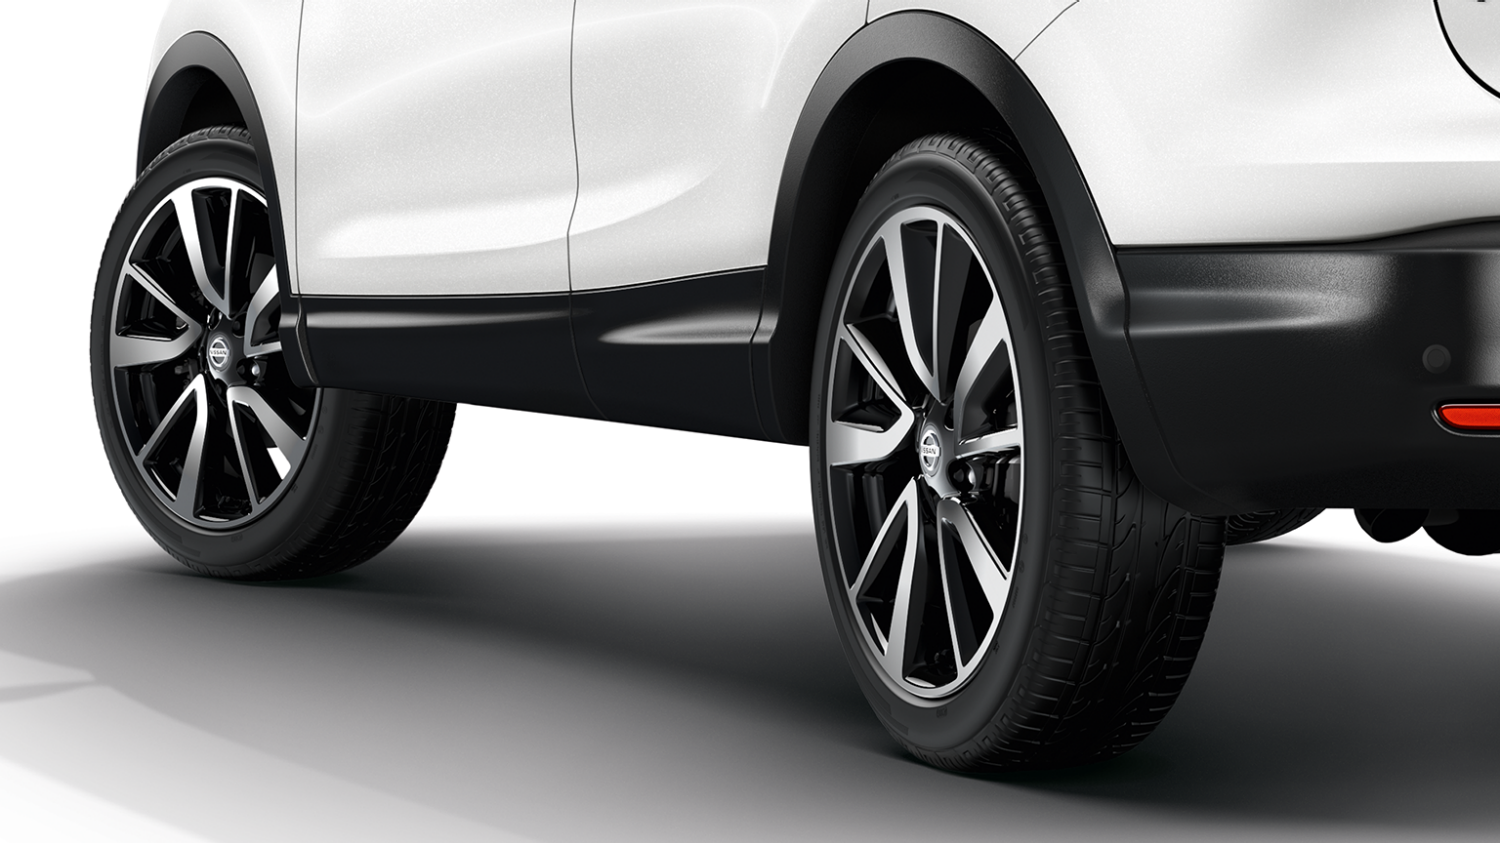 Small SUV design - Split-spoke alloy wheels | Nissan Qashqai